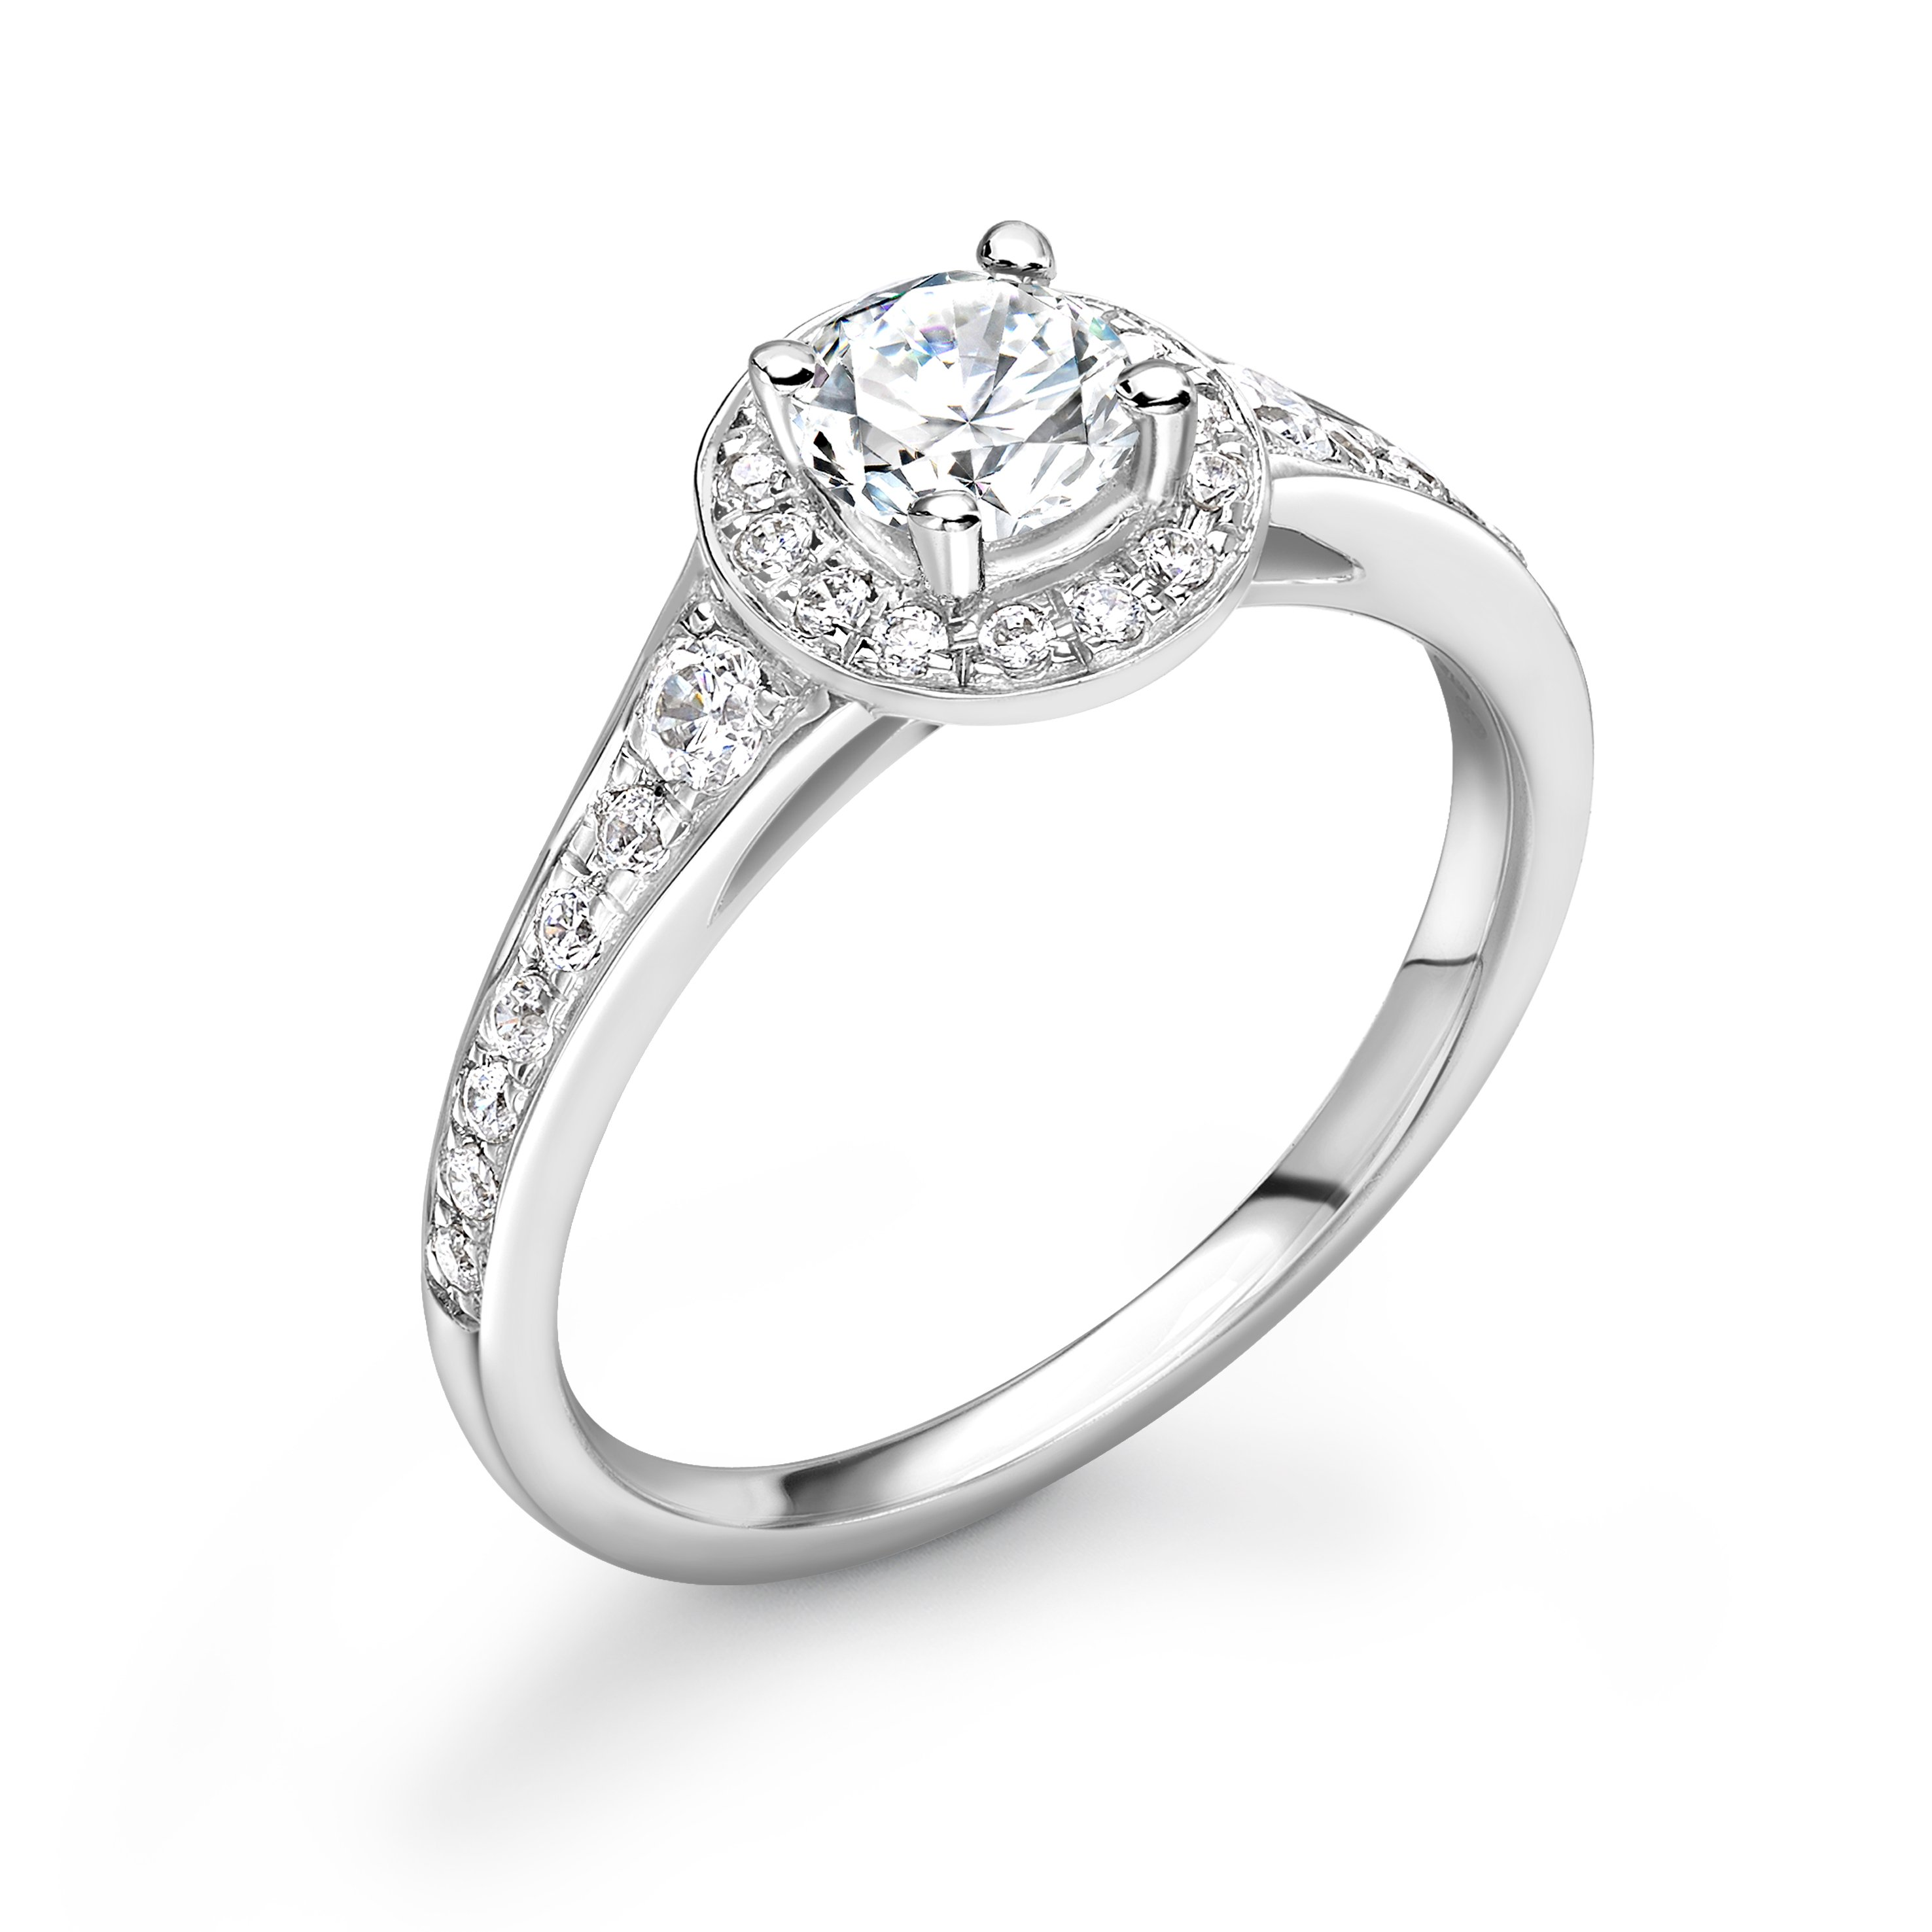 4 Prong Setting Round Shape Tapering Up Shoulder Halo Diamond Engagement Rings